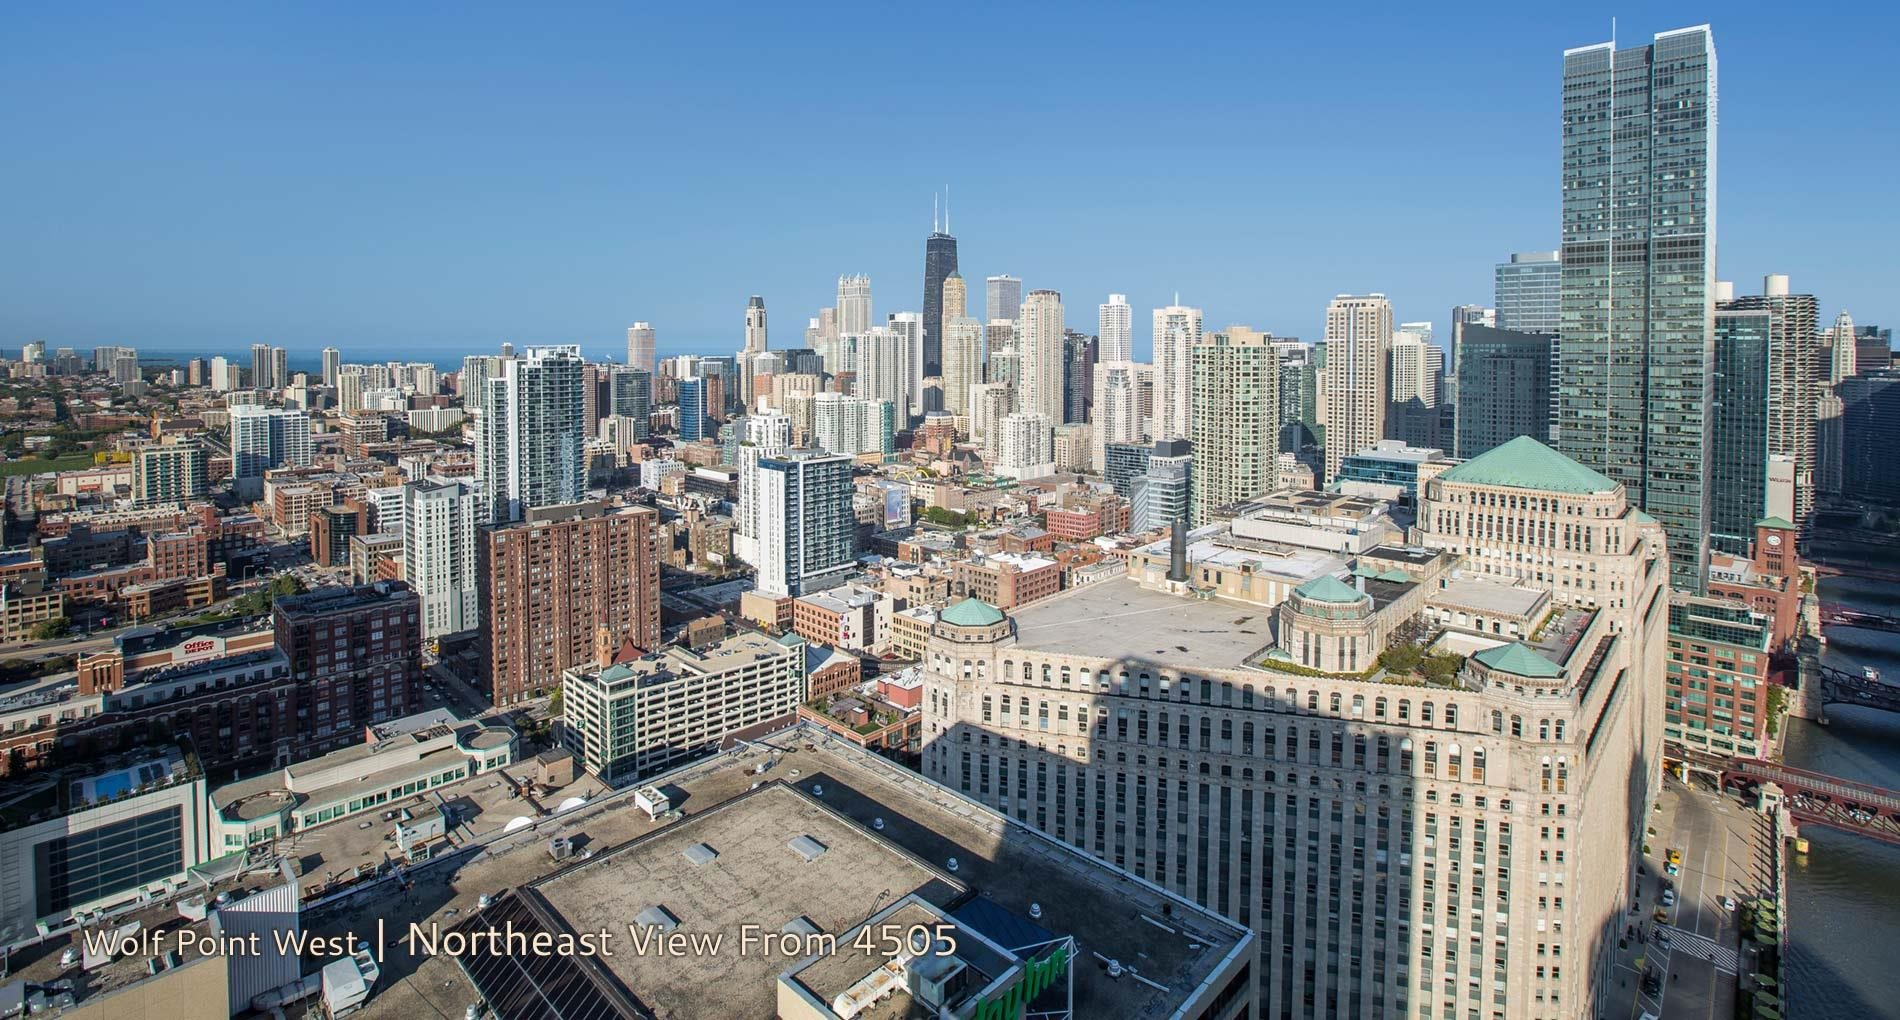 Wolf Point West | Northwest View From 4505